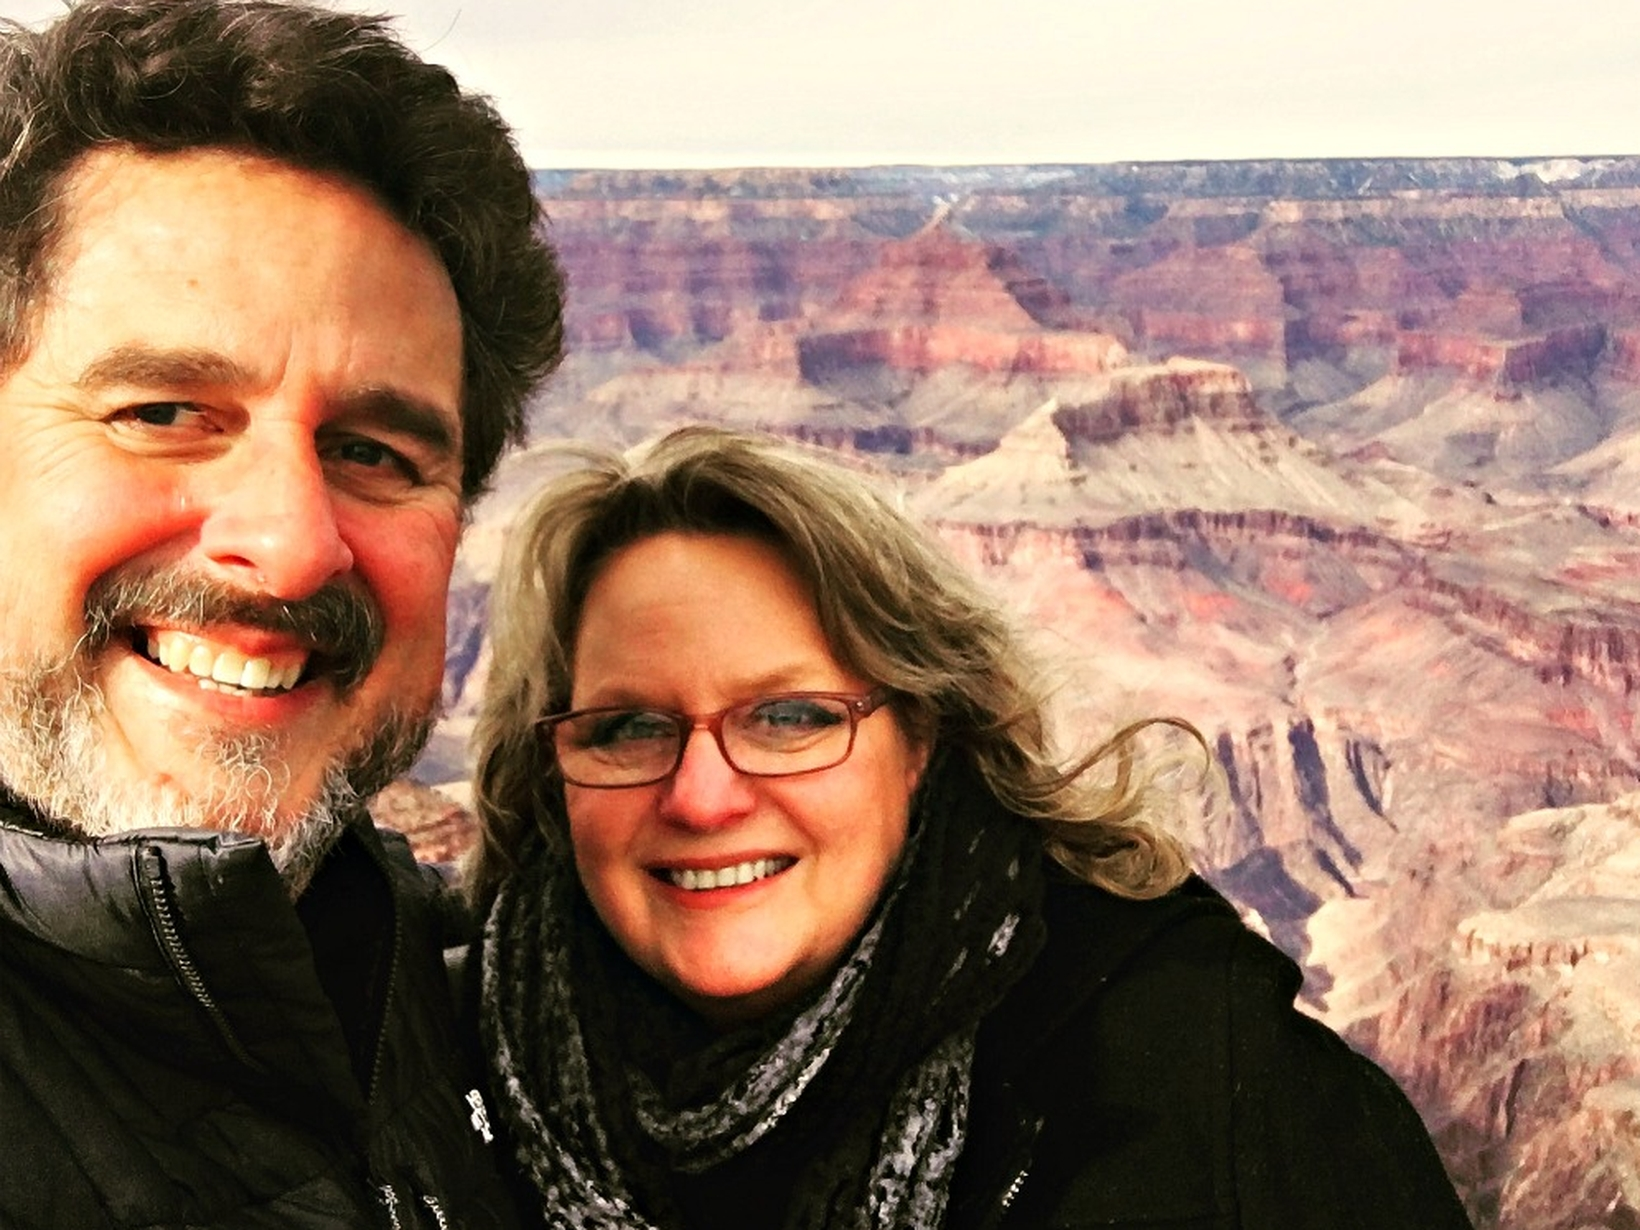 Donna and jeff & Jeff from Los Angeles, California, United States